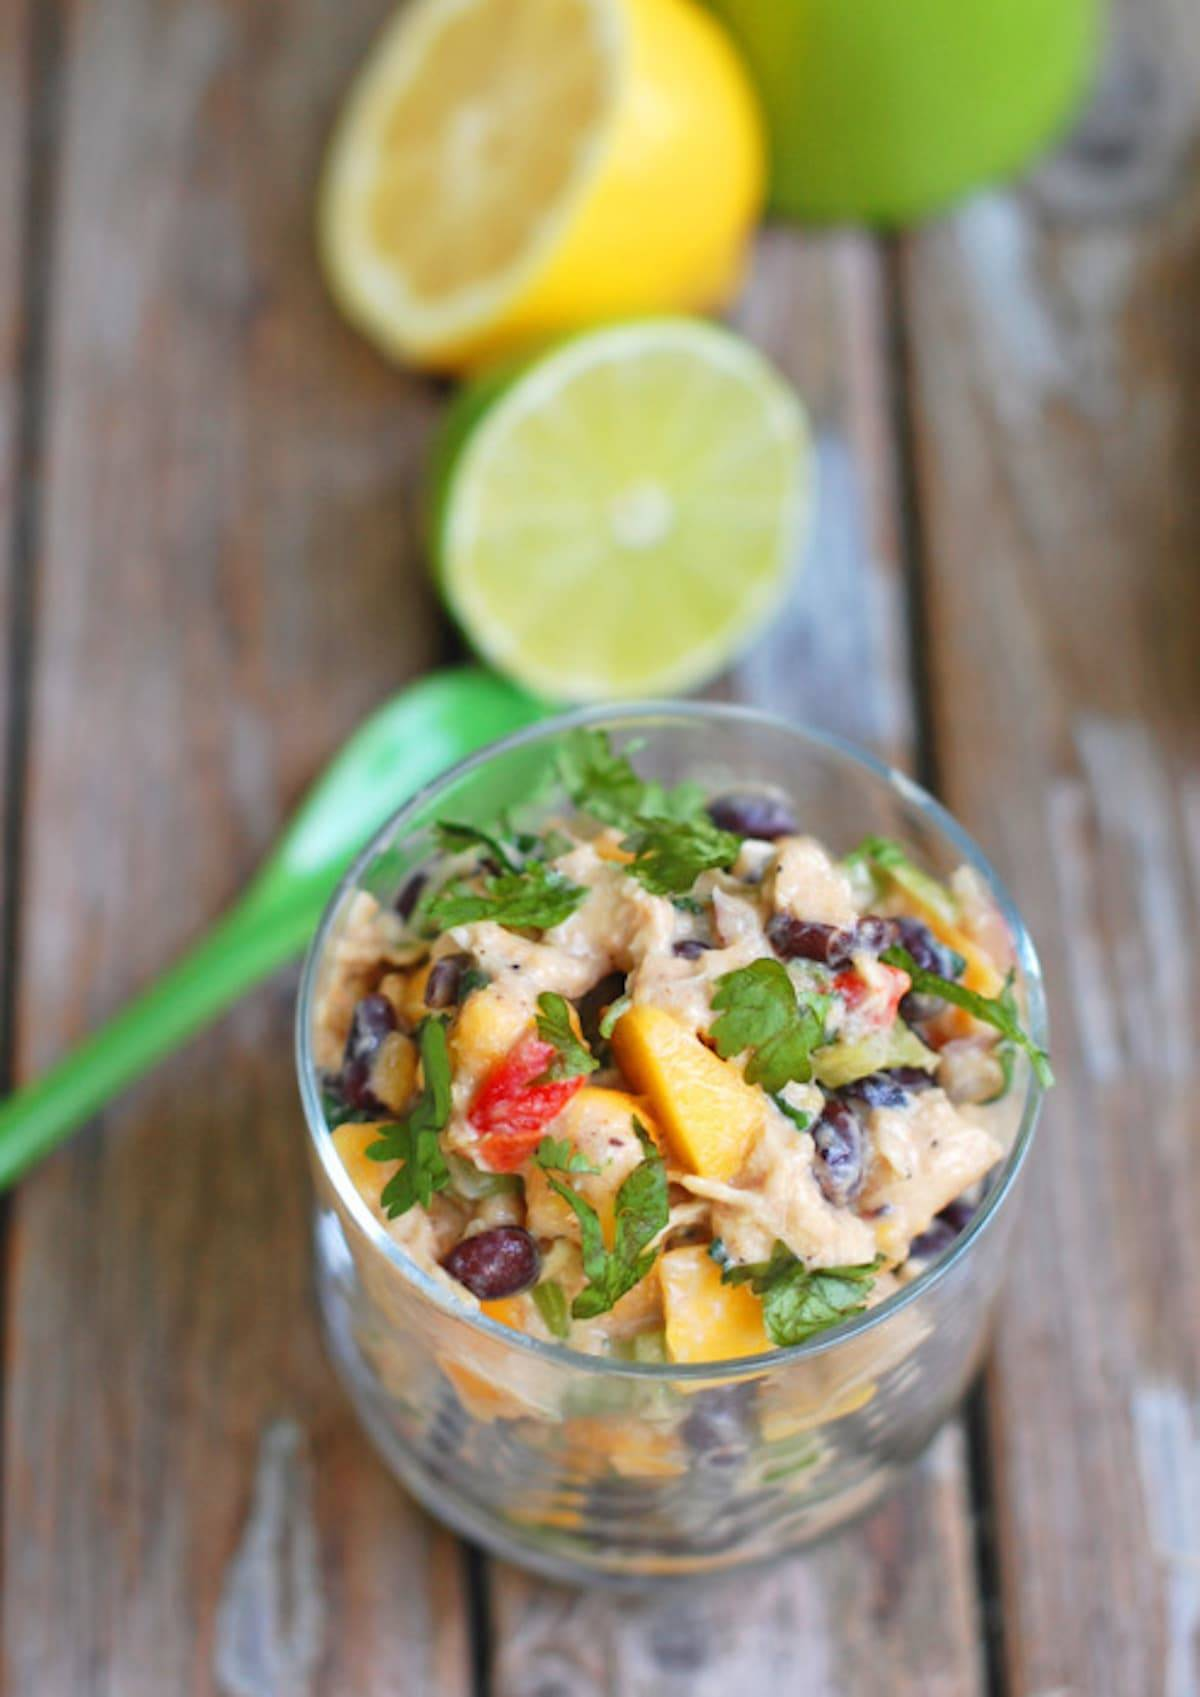 This mango chicken salad recipe is healthy, fresh, and bright. It's super tasty and super easy. You can taste the flavors of the tropics! | pinchofyum.com